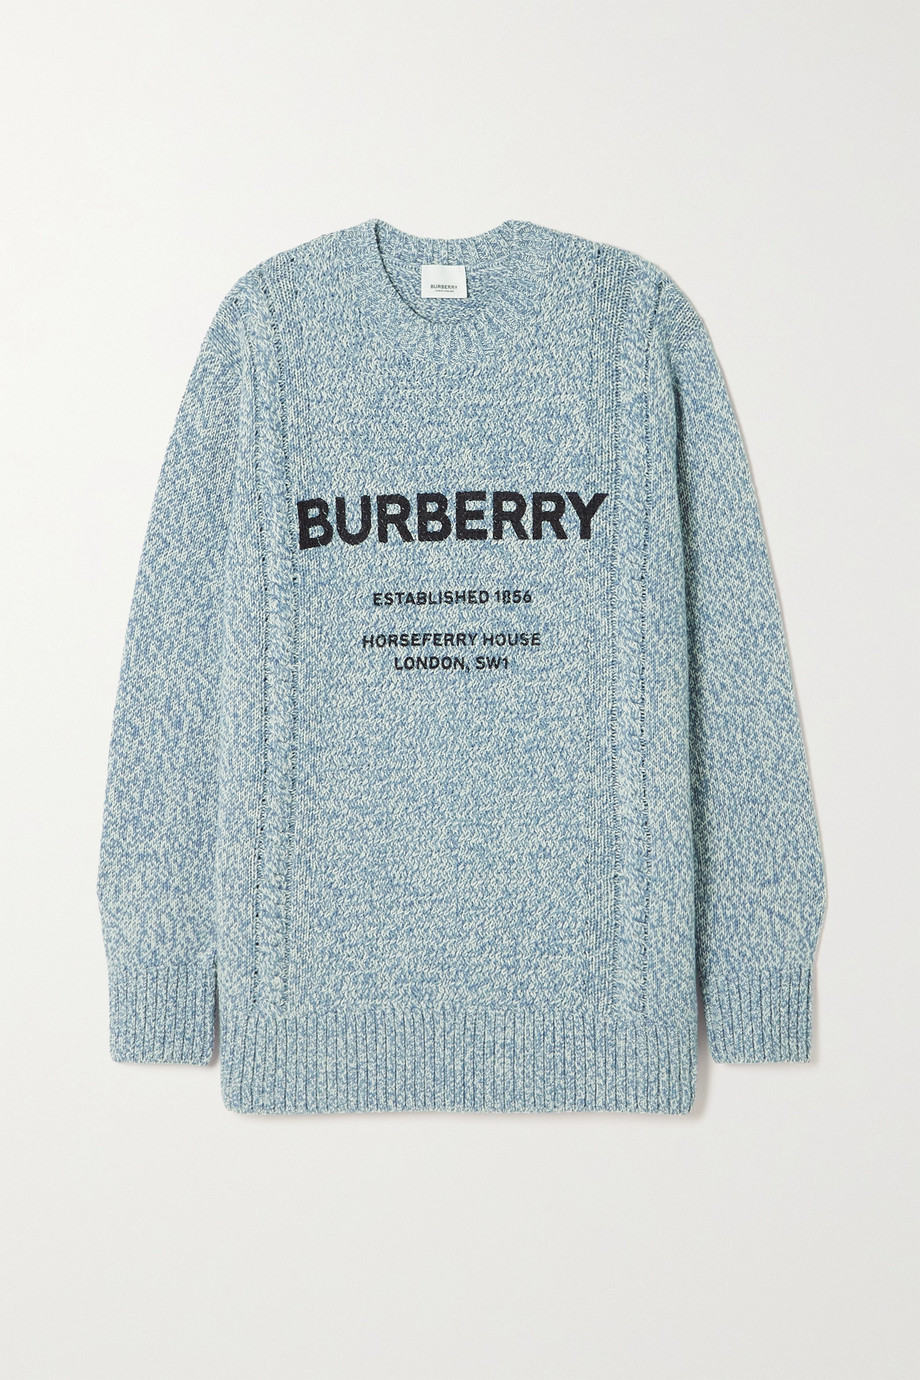 Burberry Printed wool and cotton-blend sweater